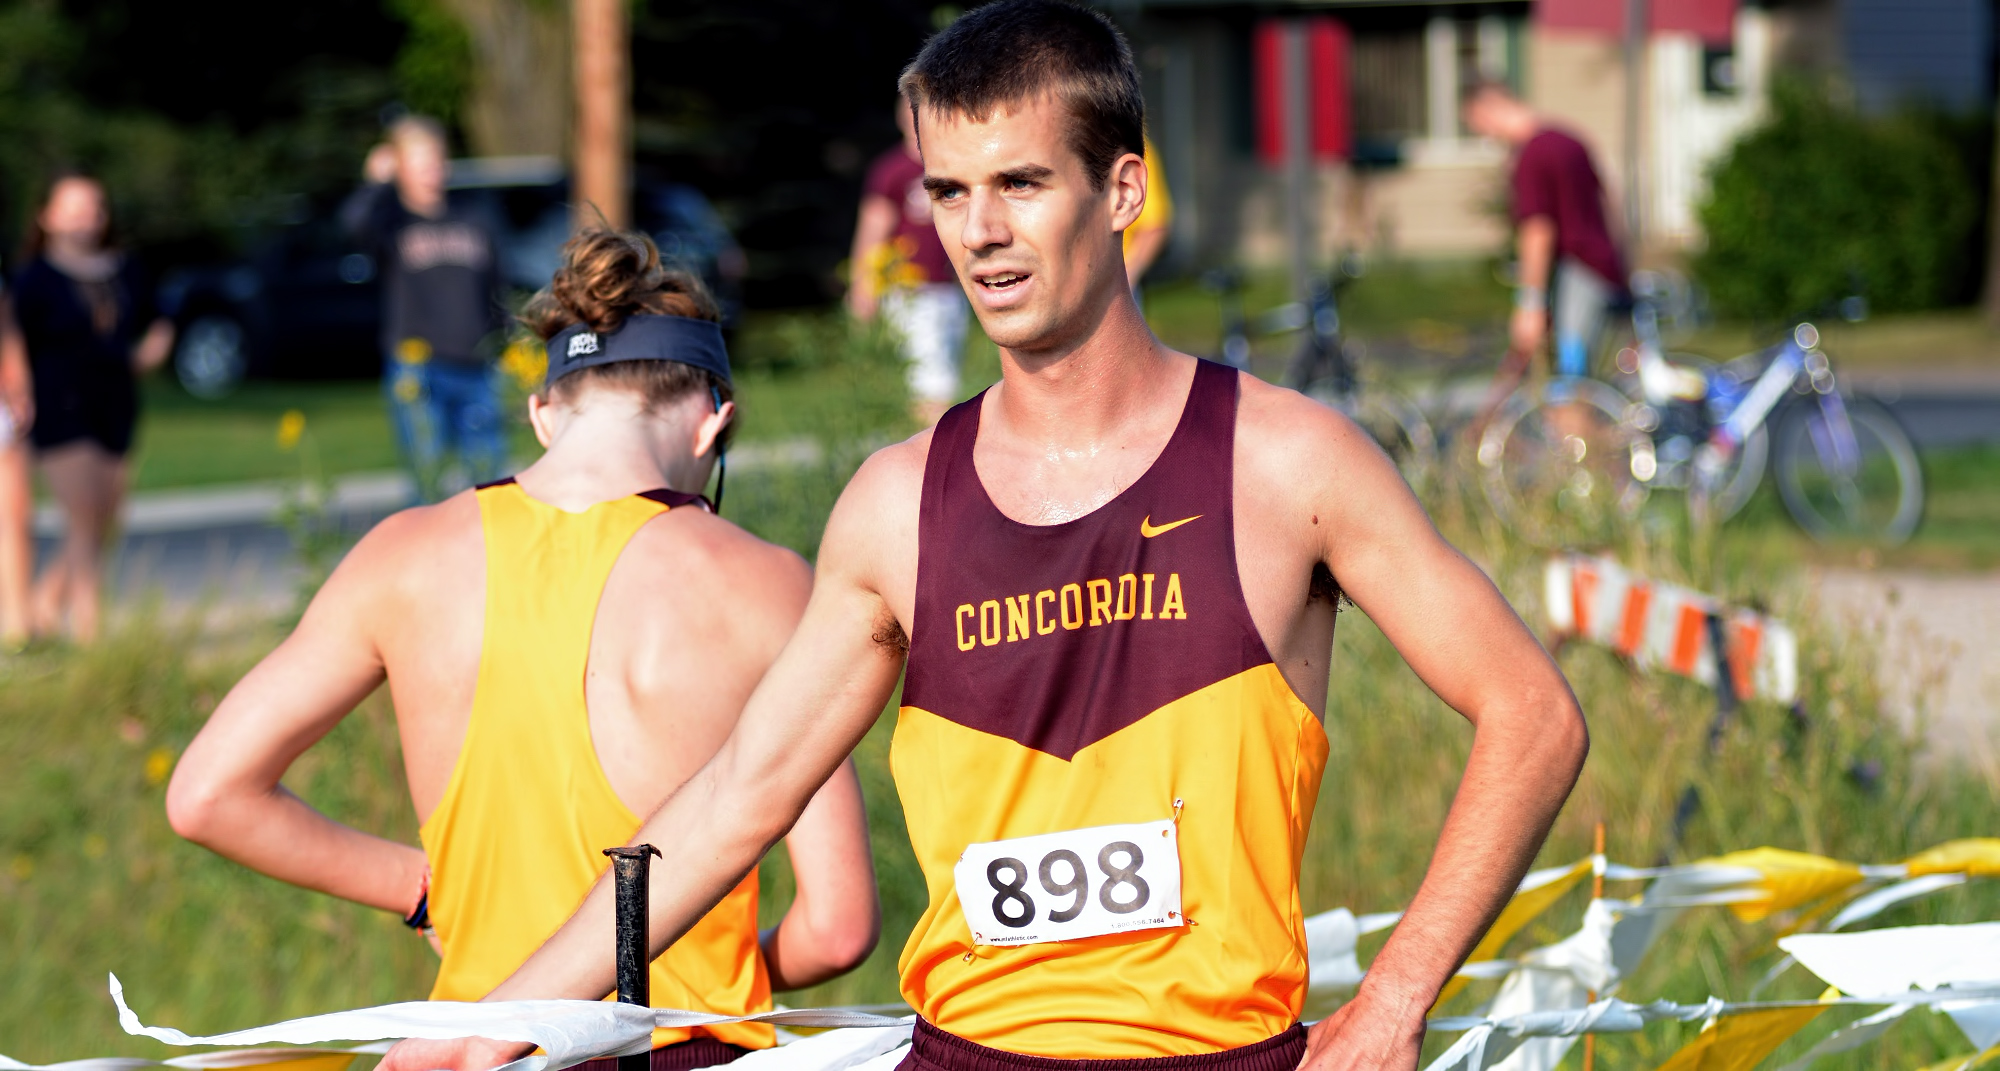 Senior Matthew Lillehaugen was the top Cobber finisher at the MSUM Twilgith Meet as he ran a 20:01.0 and placed 23rd.